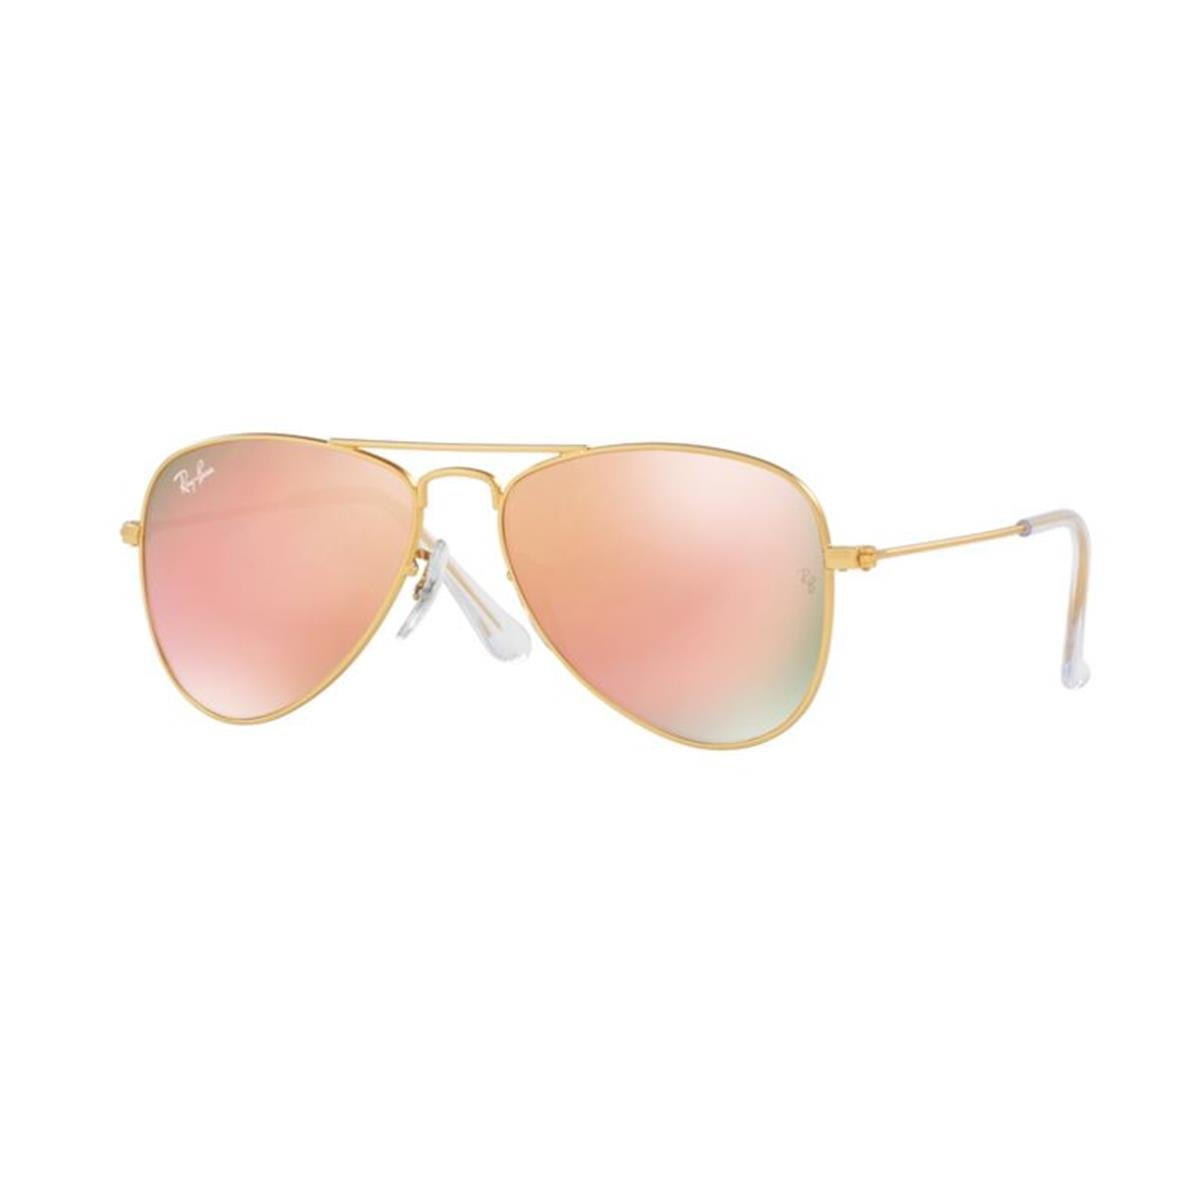 be375b9508a Ray-Ban Girl s RJ9506S-249 2Y-50 Gold Aviator Sunglasses  Ray-Ban   Amazon.ca  Clothing   Accessories